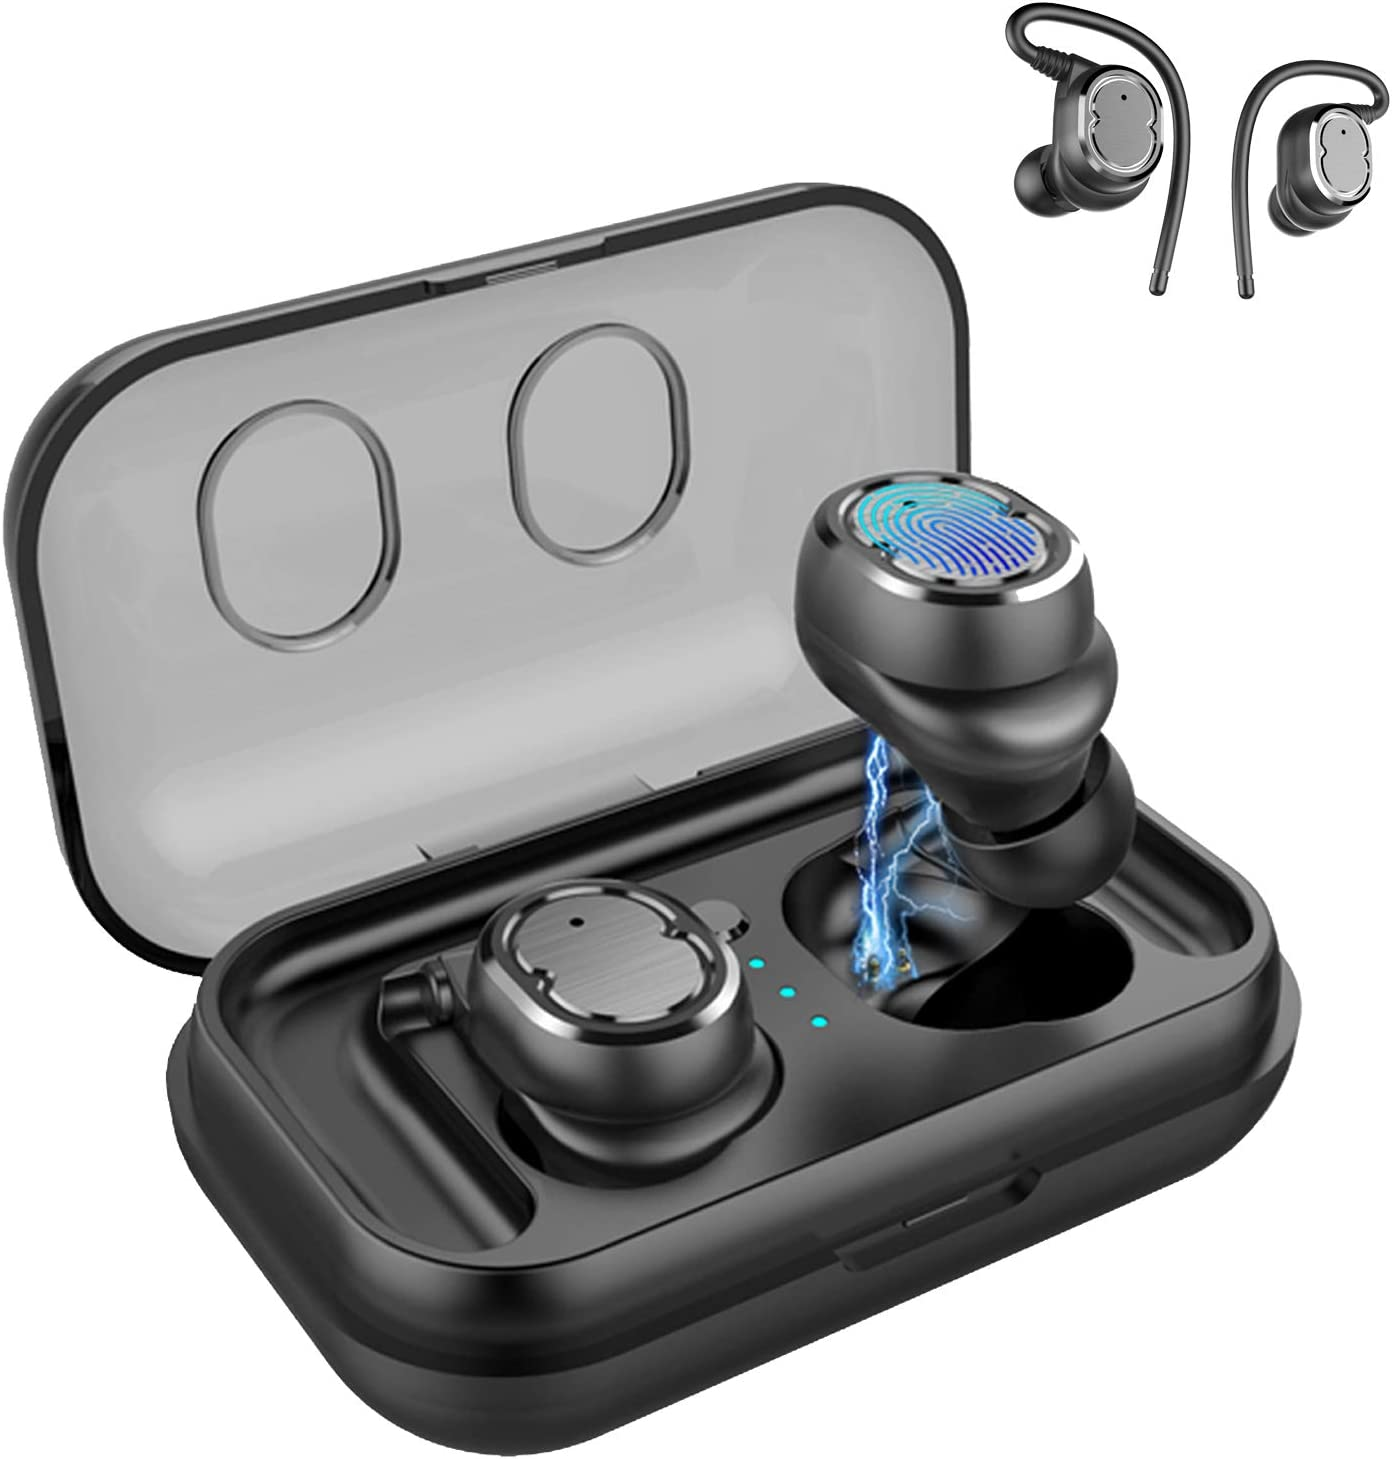 Bluetooth Earbuds,Wireless Headphones,Bluetooth Headset,Sports Earphones with Earhooks,Car Headset with Mic for iPhone and Android Smart Phones,25H Playtime,Stereo Sound with Charging Case (White)